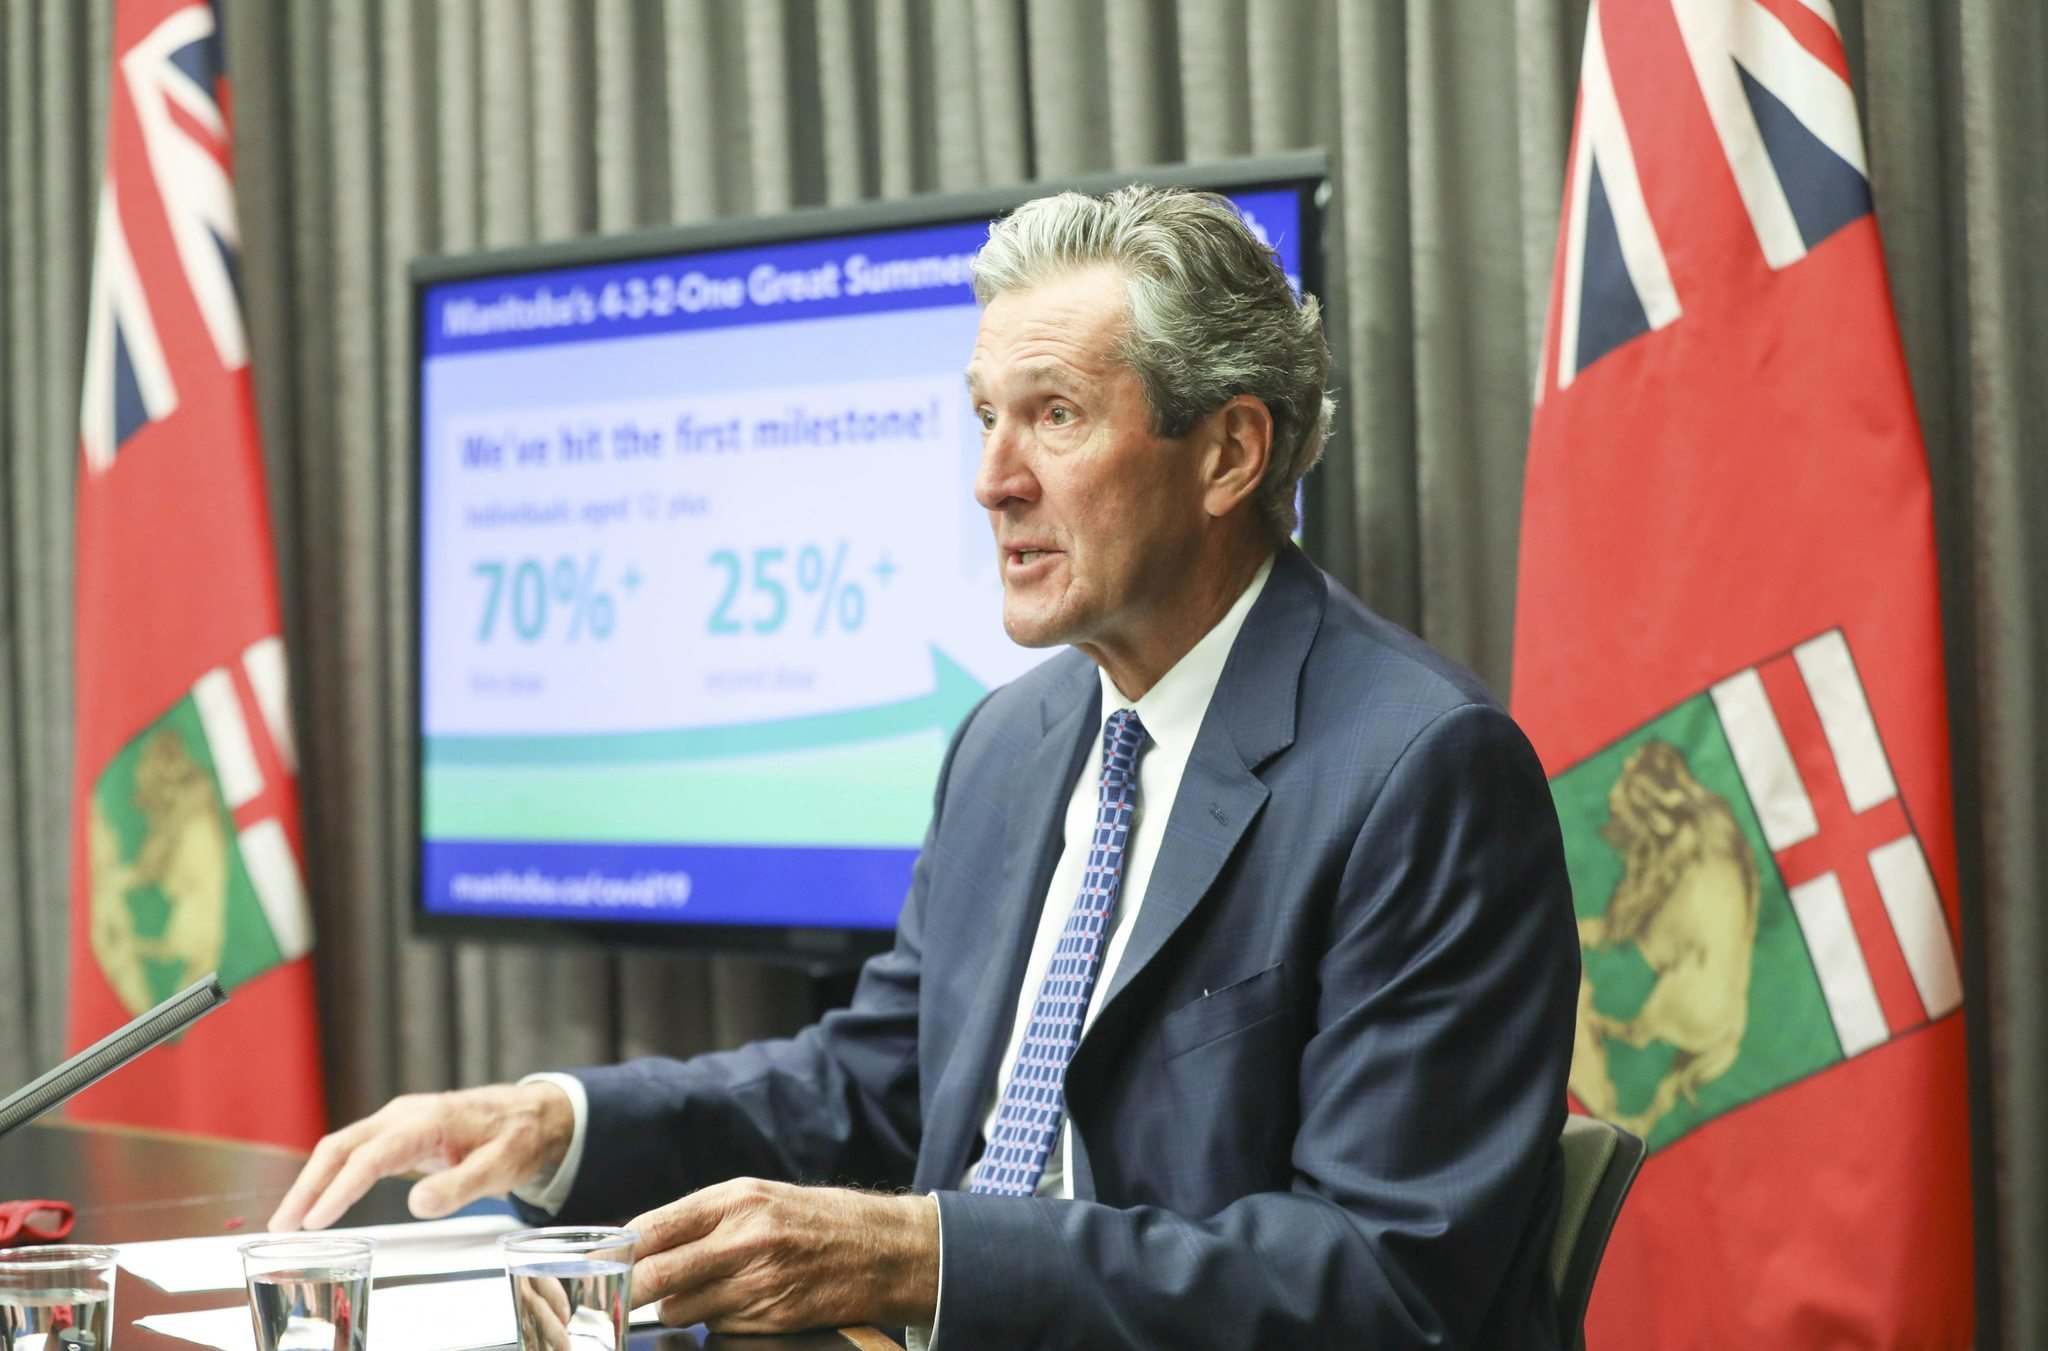 """RUTH BONNEVILLE / FREE PRESS FILES</p><p>It's a way to """"ensure and encourage Manitoba employees to get vaccinated,"""" Premier Brian Pallister told reporters at a news conference Thursday.</p></p>"""